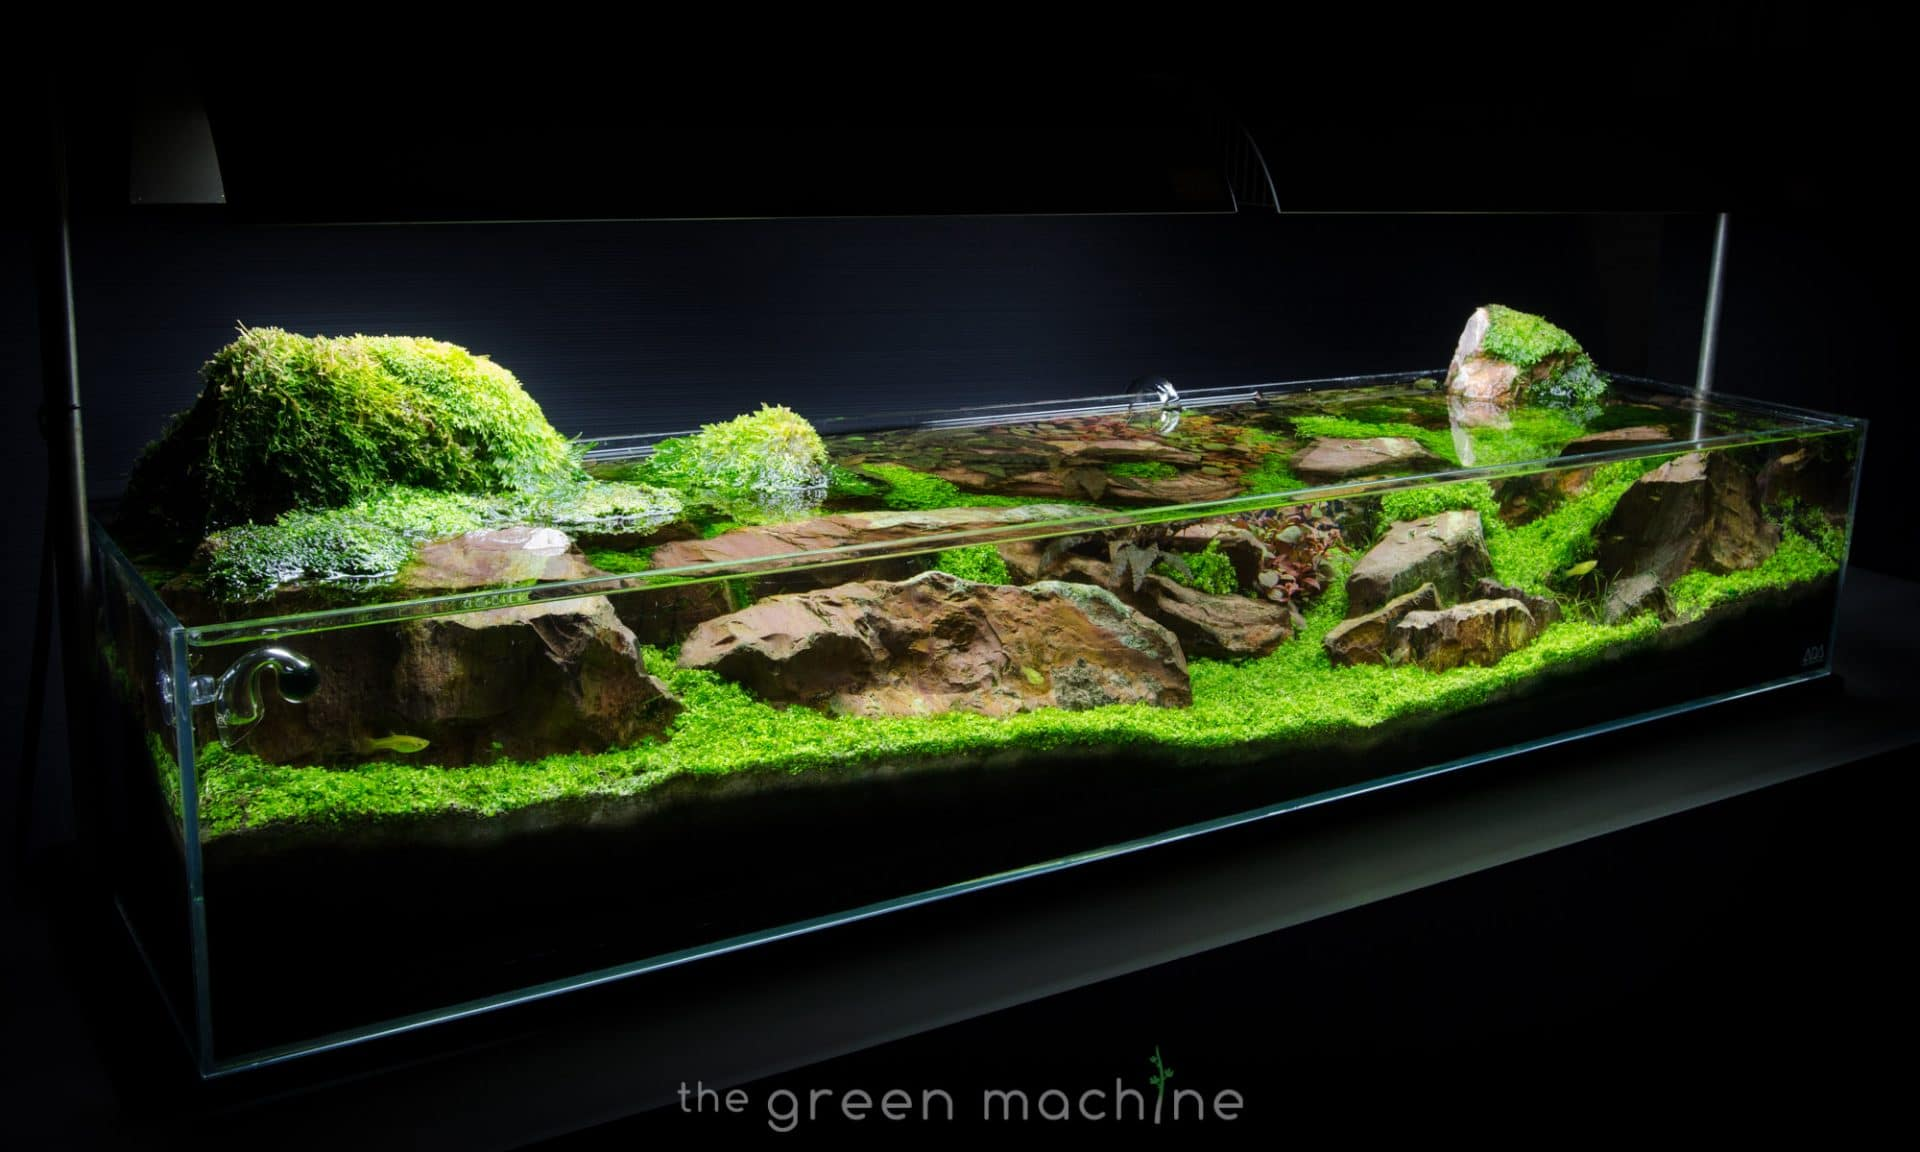 Continuity Aquascape Video Gallery By James Findley Aquascape Art The Green Machine